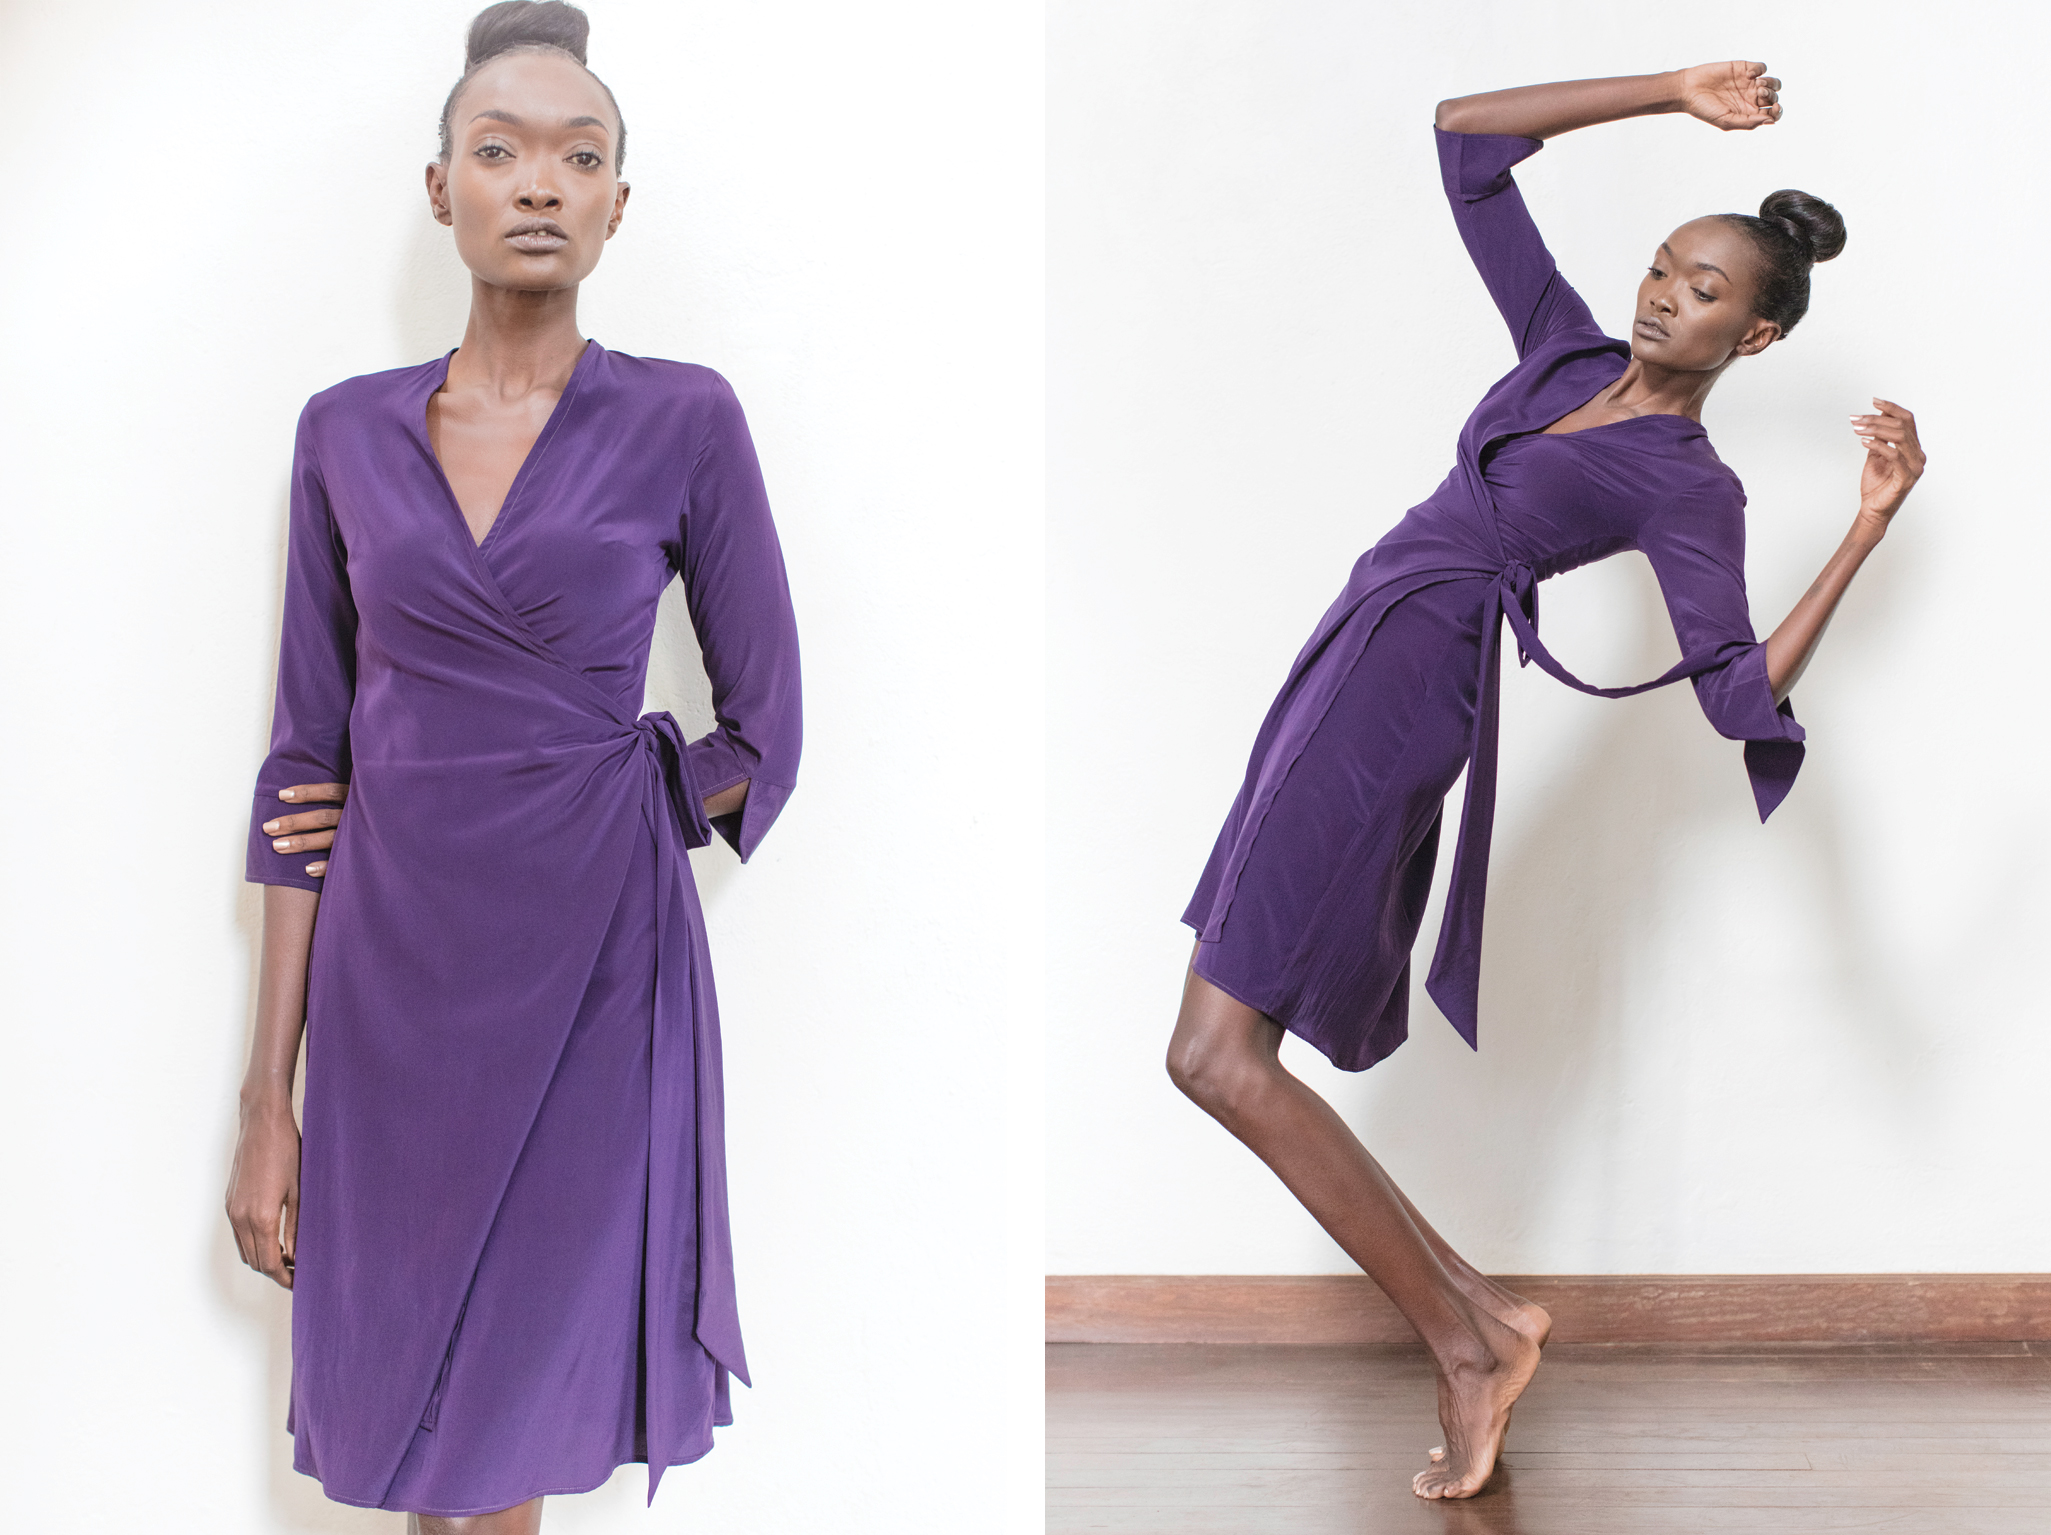 Shamini Wrap dress  - With a classic V-neck, this easy-wearing dress is simple yet chic. with its clean V neck, this dress is easy to wear and versatile. 97% silk 3% lycra.